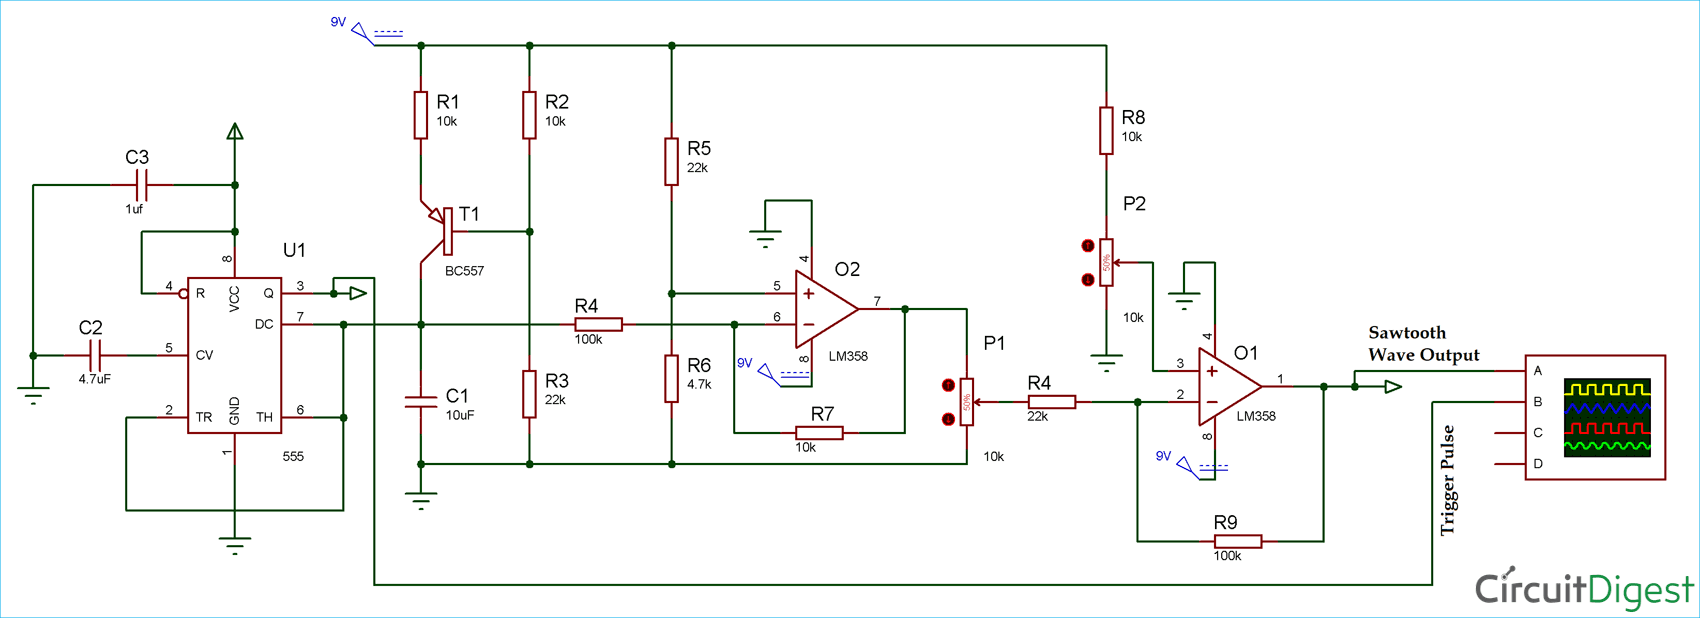 Sawtooth Waveform Generator Circuit Diagram